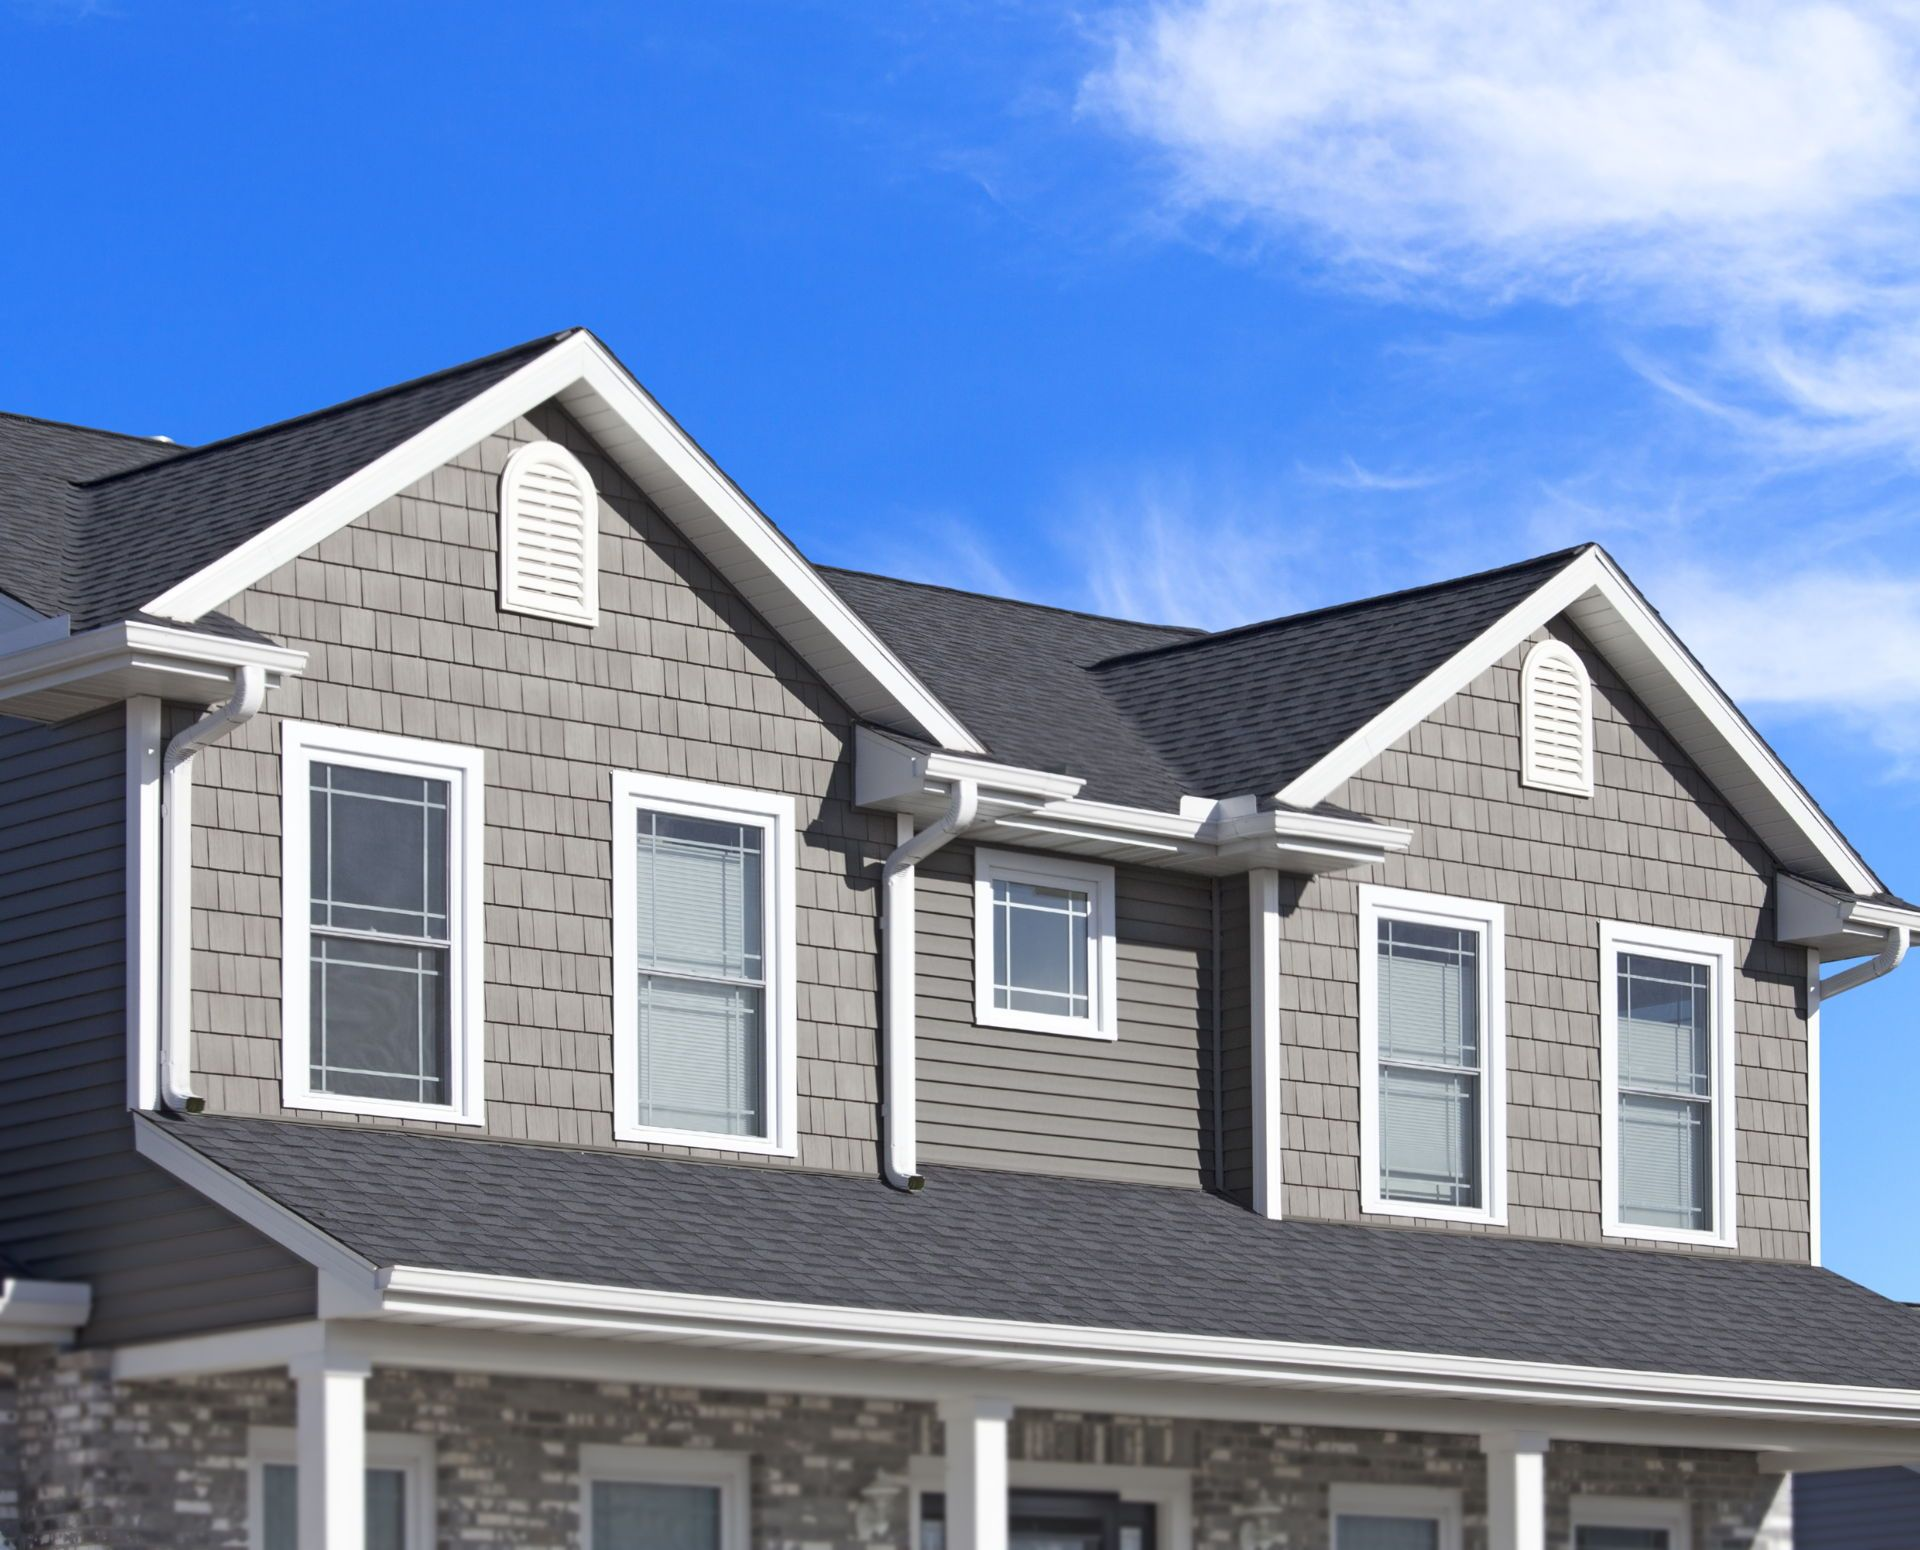 How Much Does A Roof Replacement Cost Roof Replacement Cost Shake Siding House Siding Options